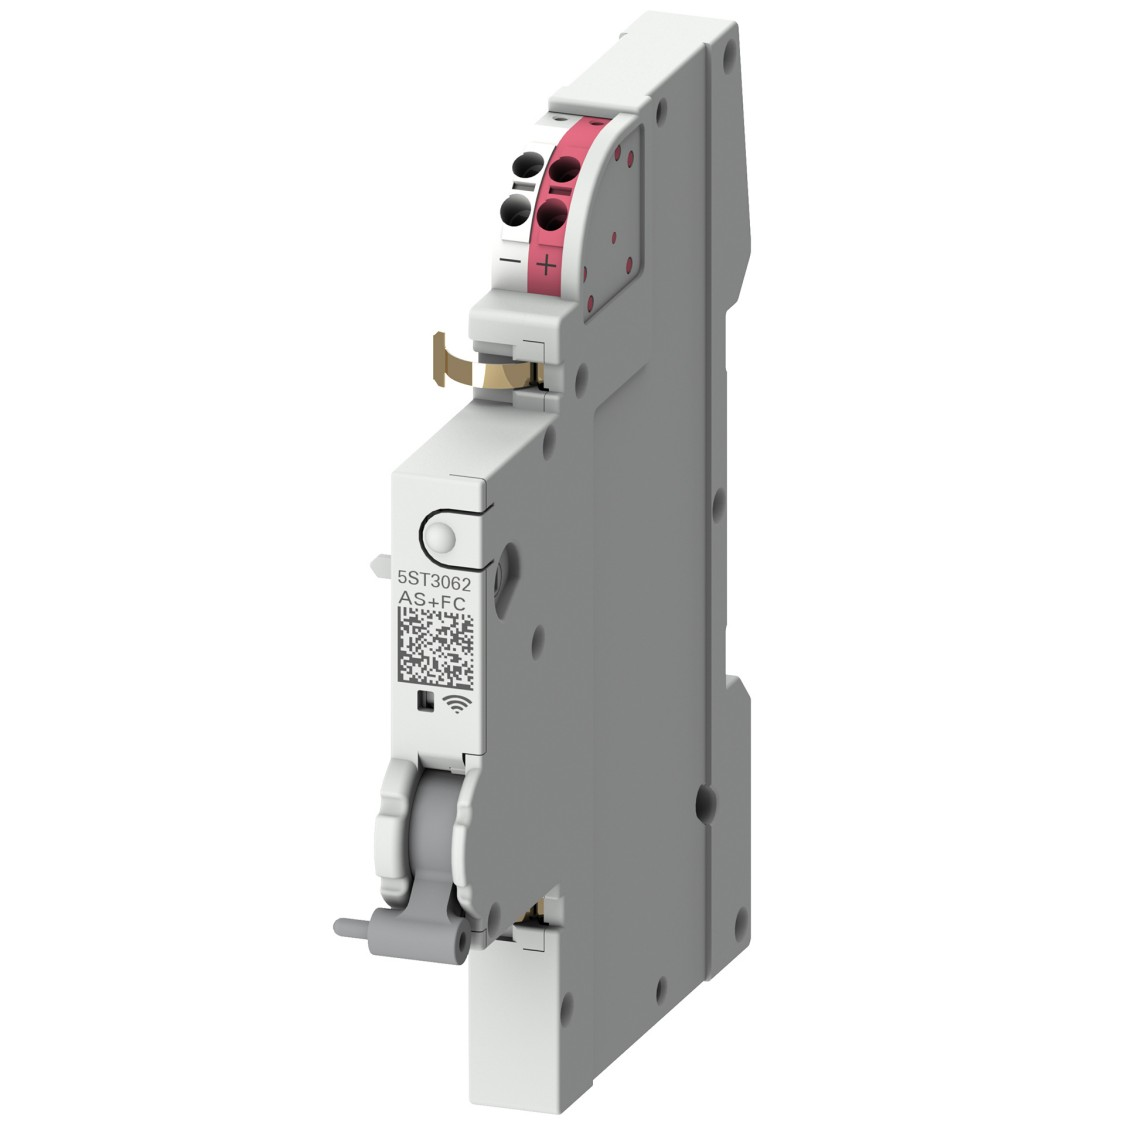 5ST3 COM auxiliary/fault signal contact